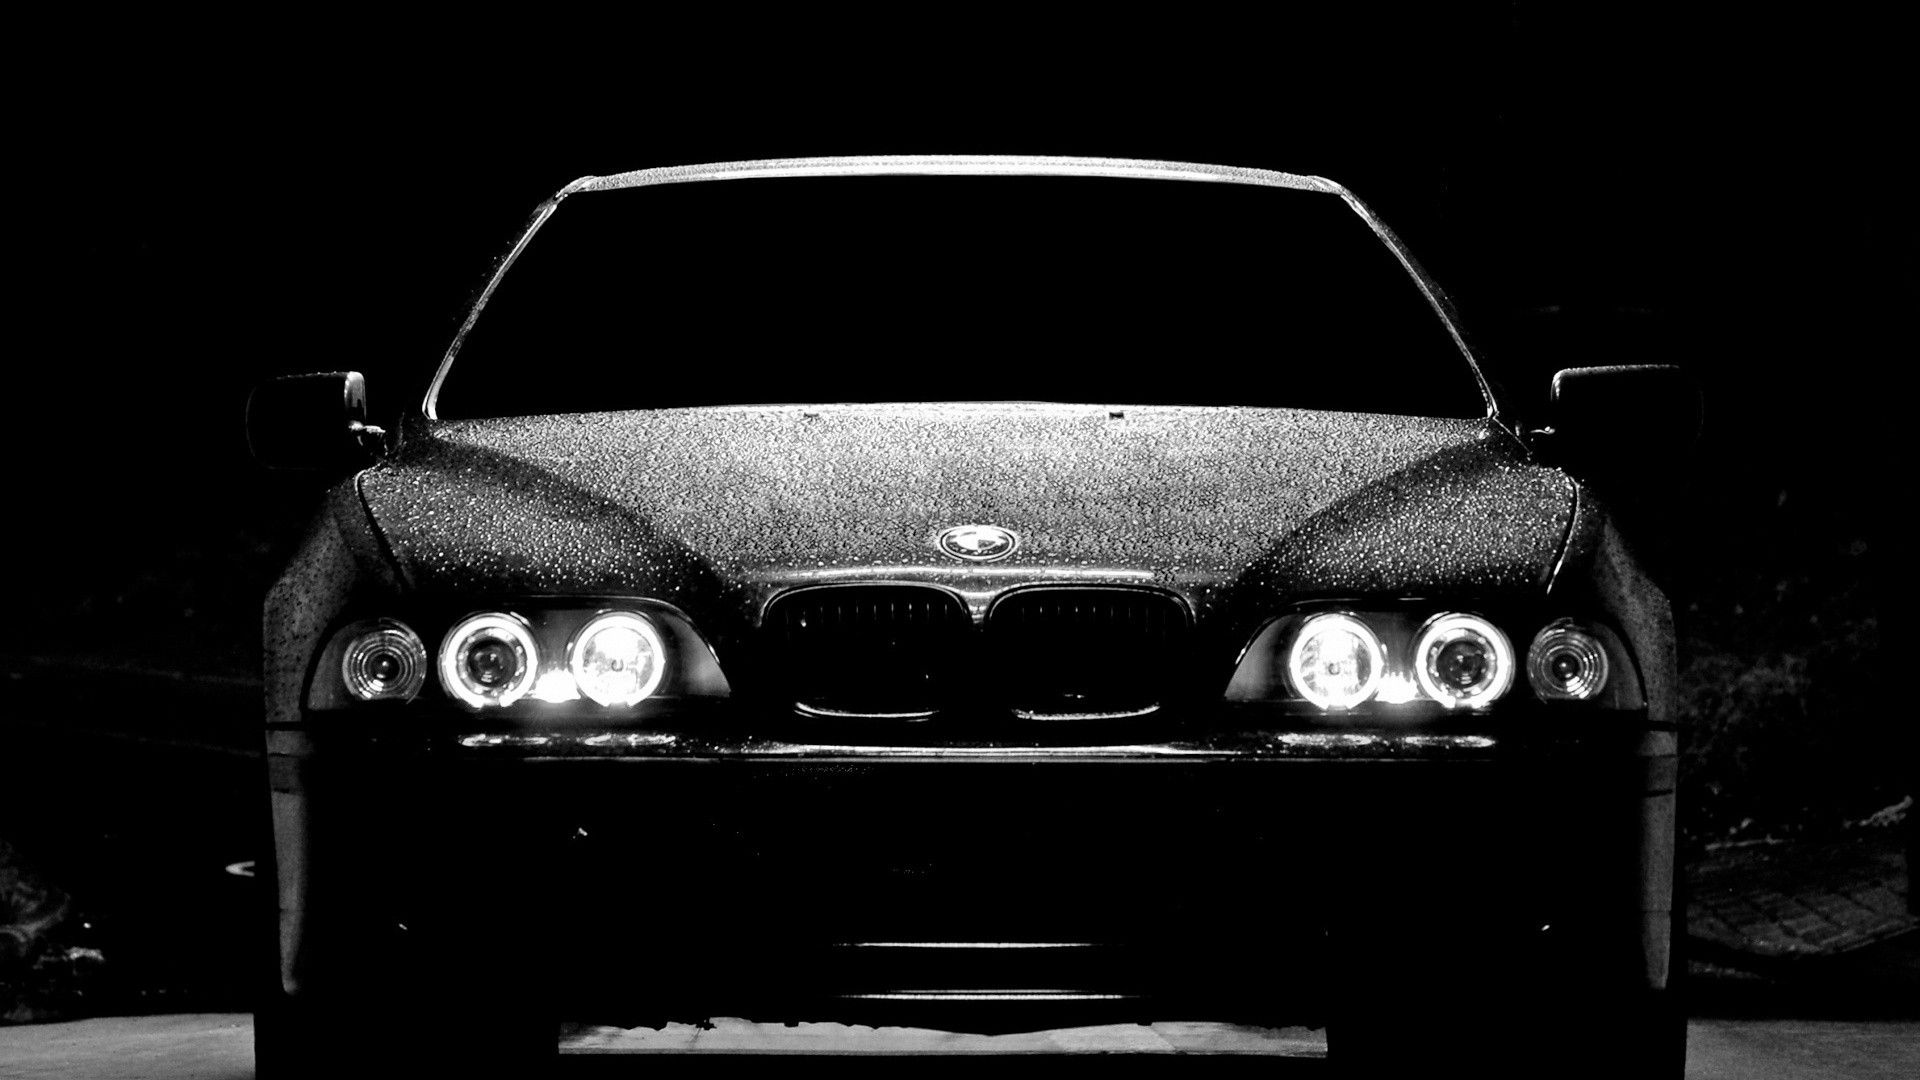 Pin By Magdel Carmenate On Wallpapers Bmw Wallpapers Bmw Bmw Black